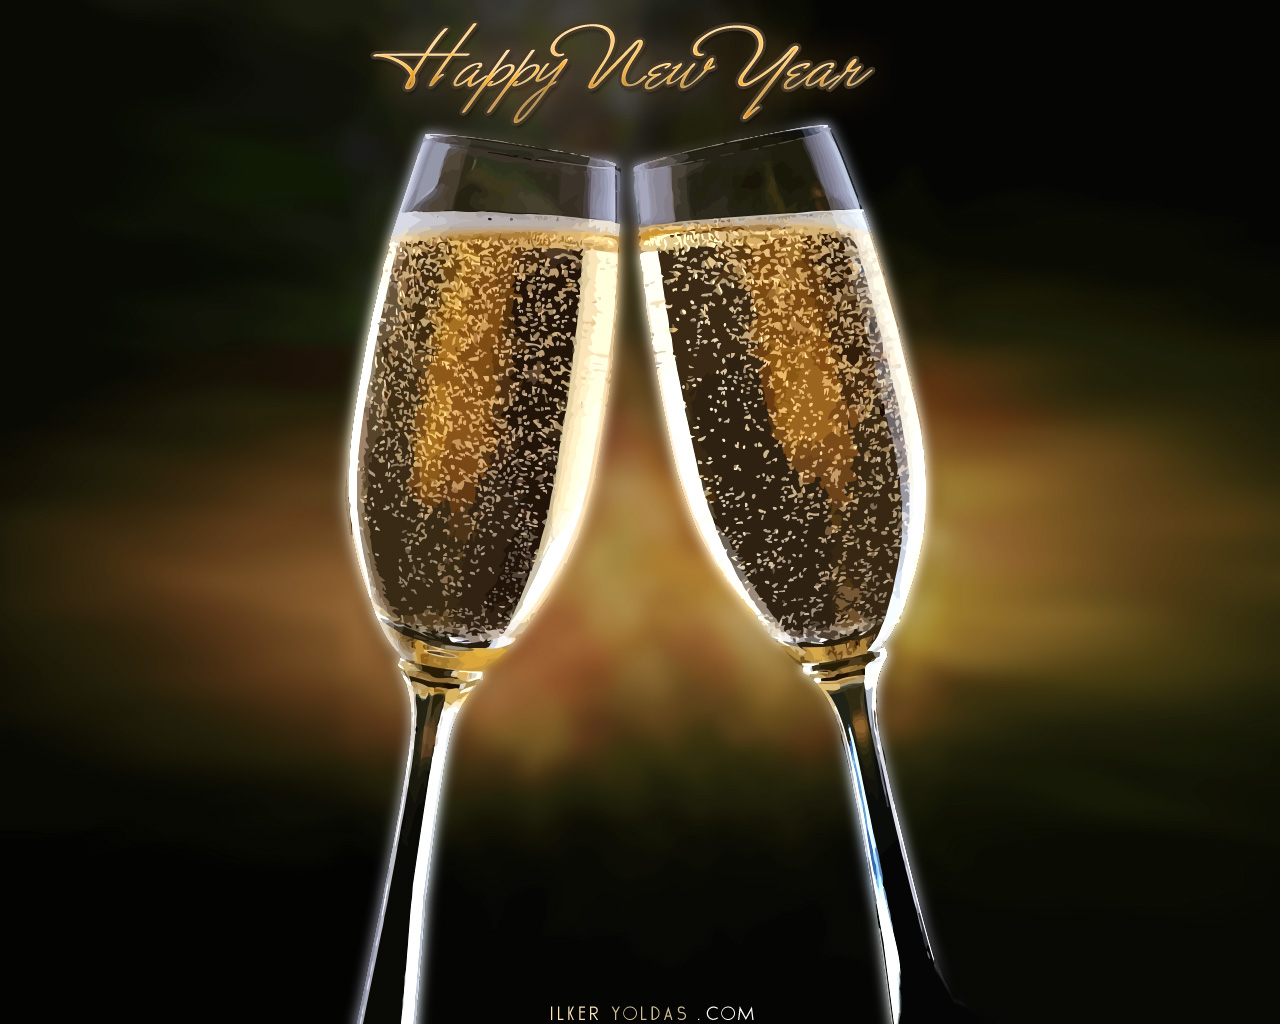 http://wondrouspics.com/wp-content/uploads/2011/12/celebrate-happy-new-year-wallpaper1.jpg